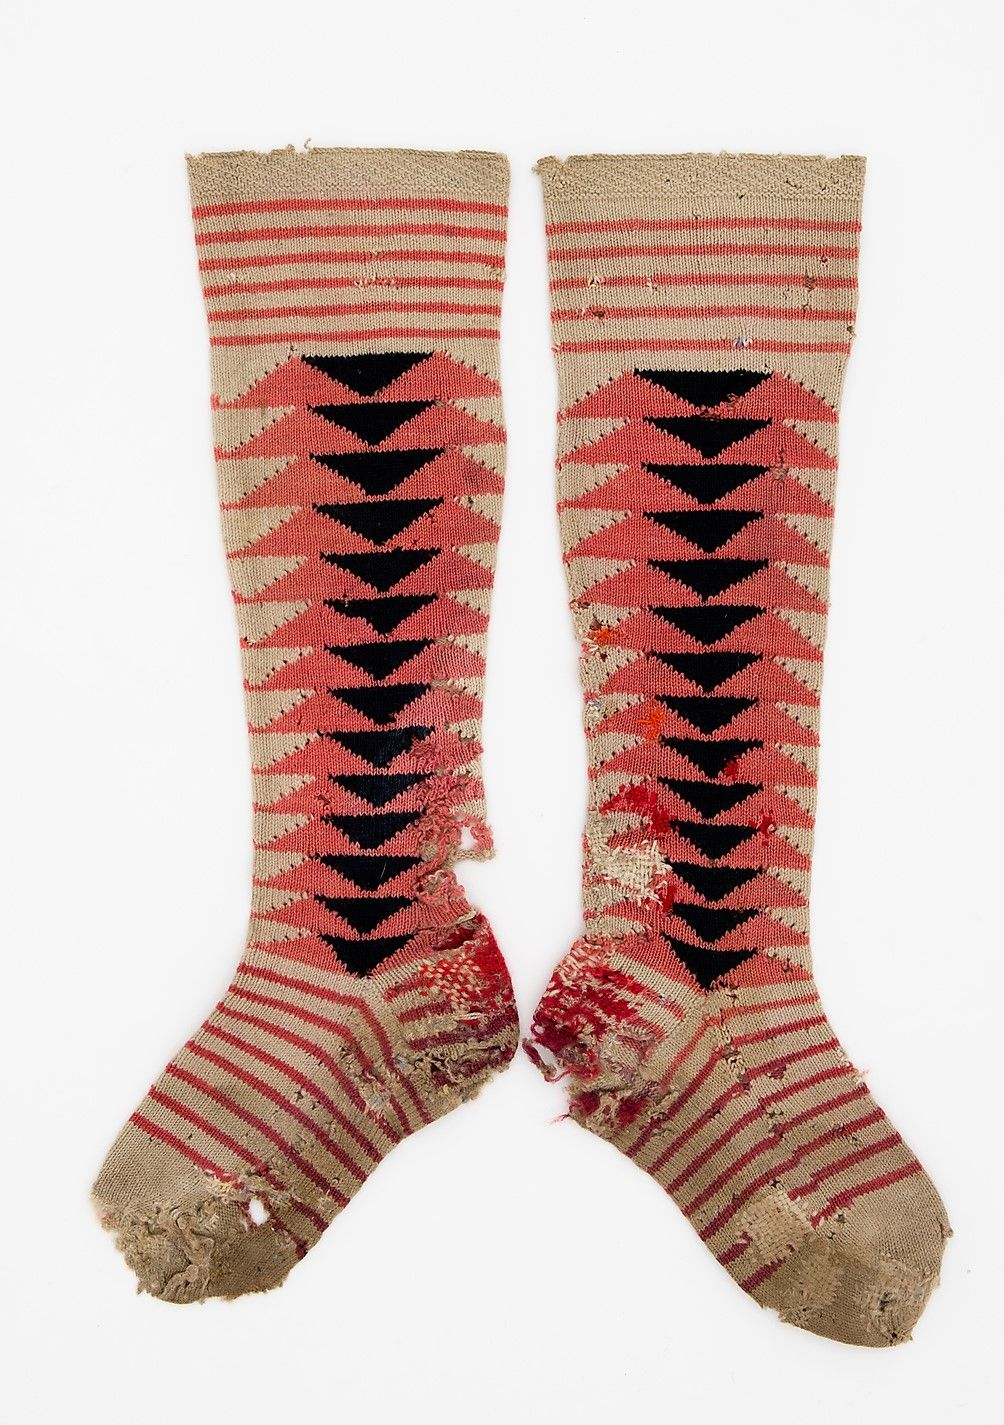 Image: Knitted socks